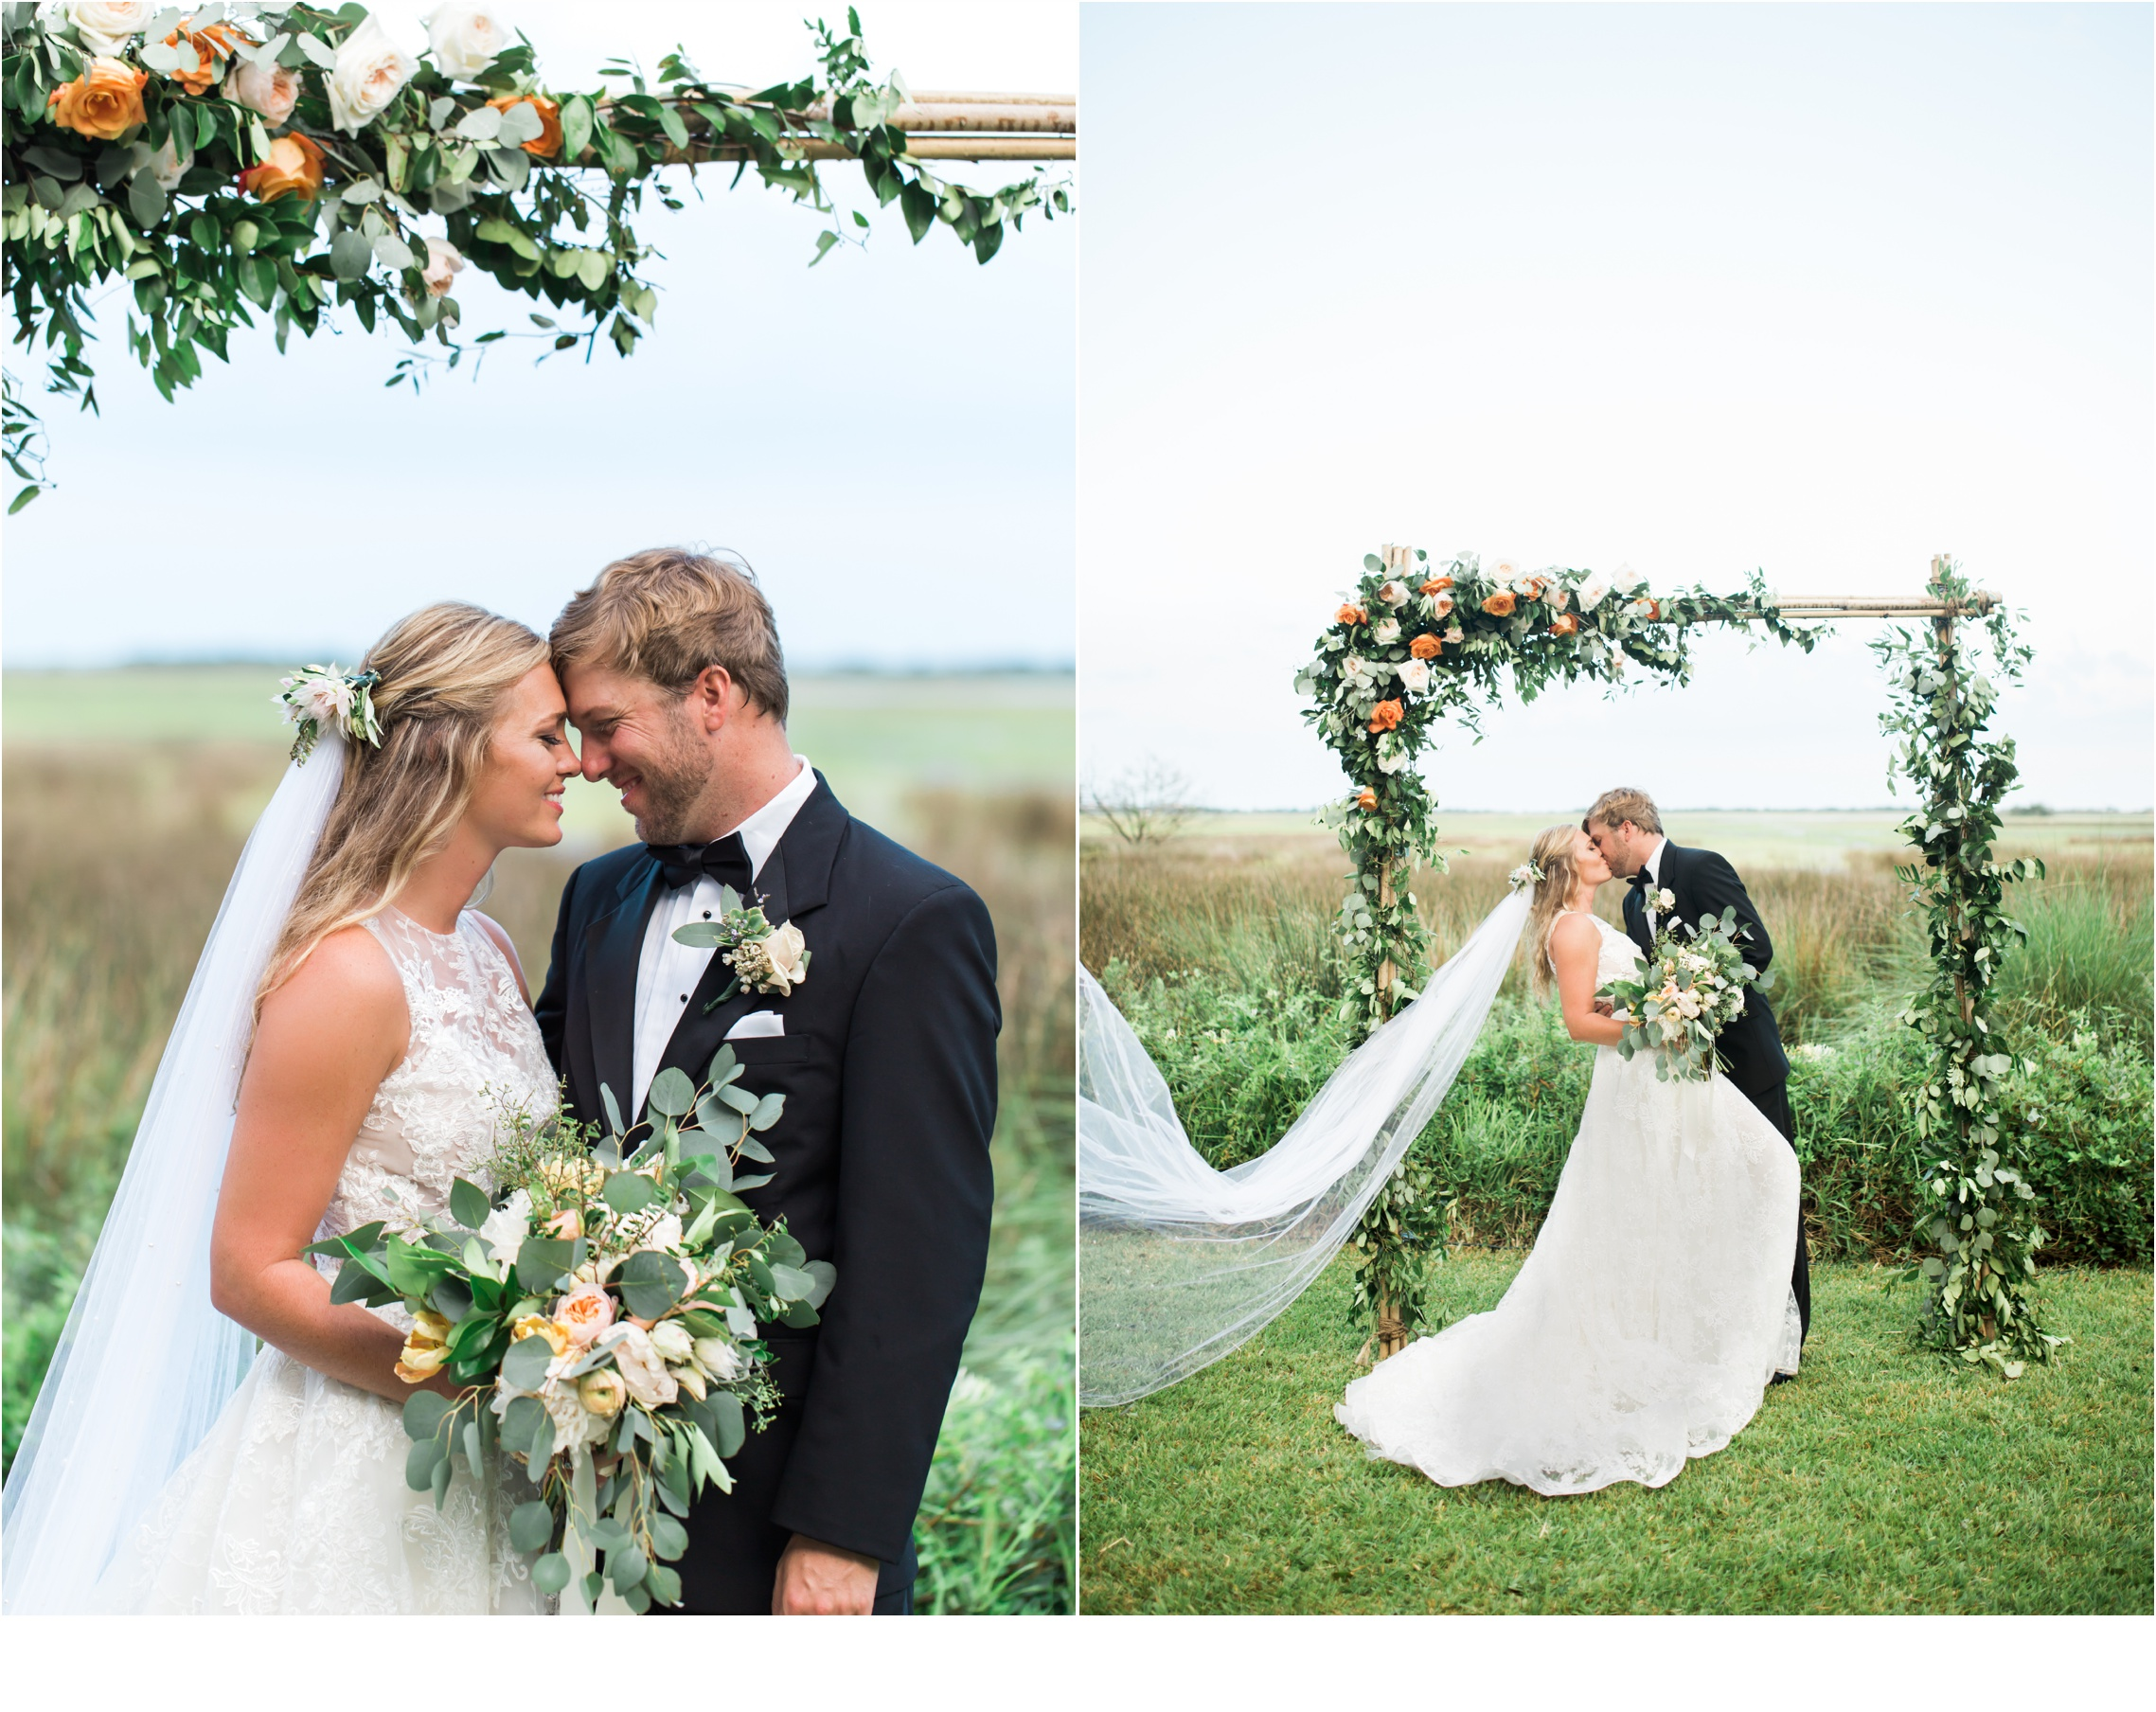 Rainey_Gregg_Photography_St._Simons_Island_Georgia_California_Wedding_Portrait_Photography_0080.jpg